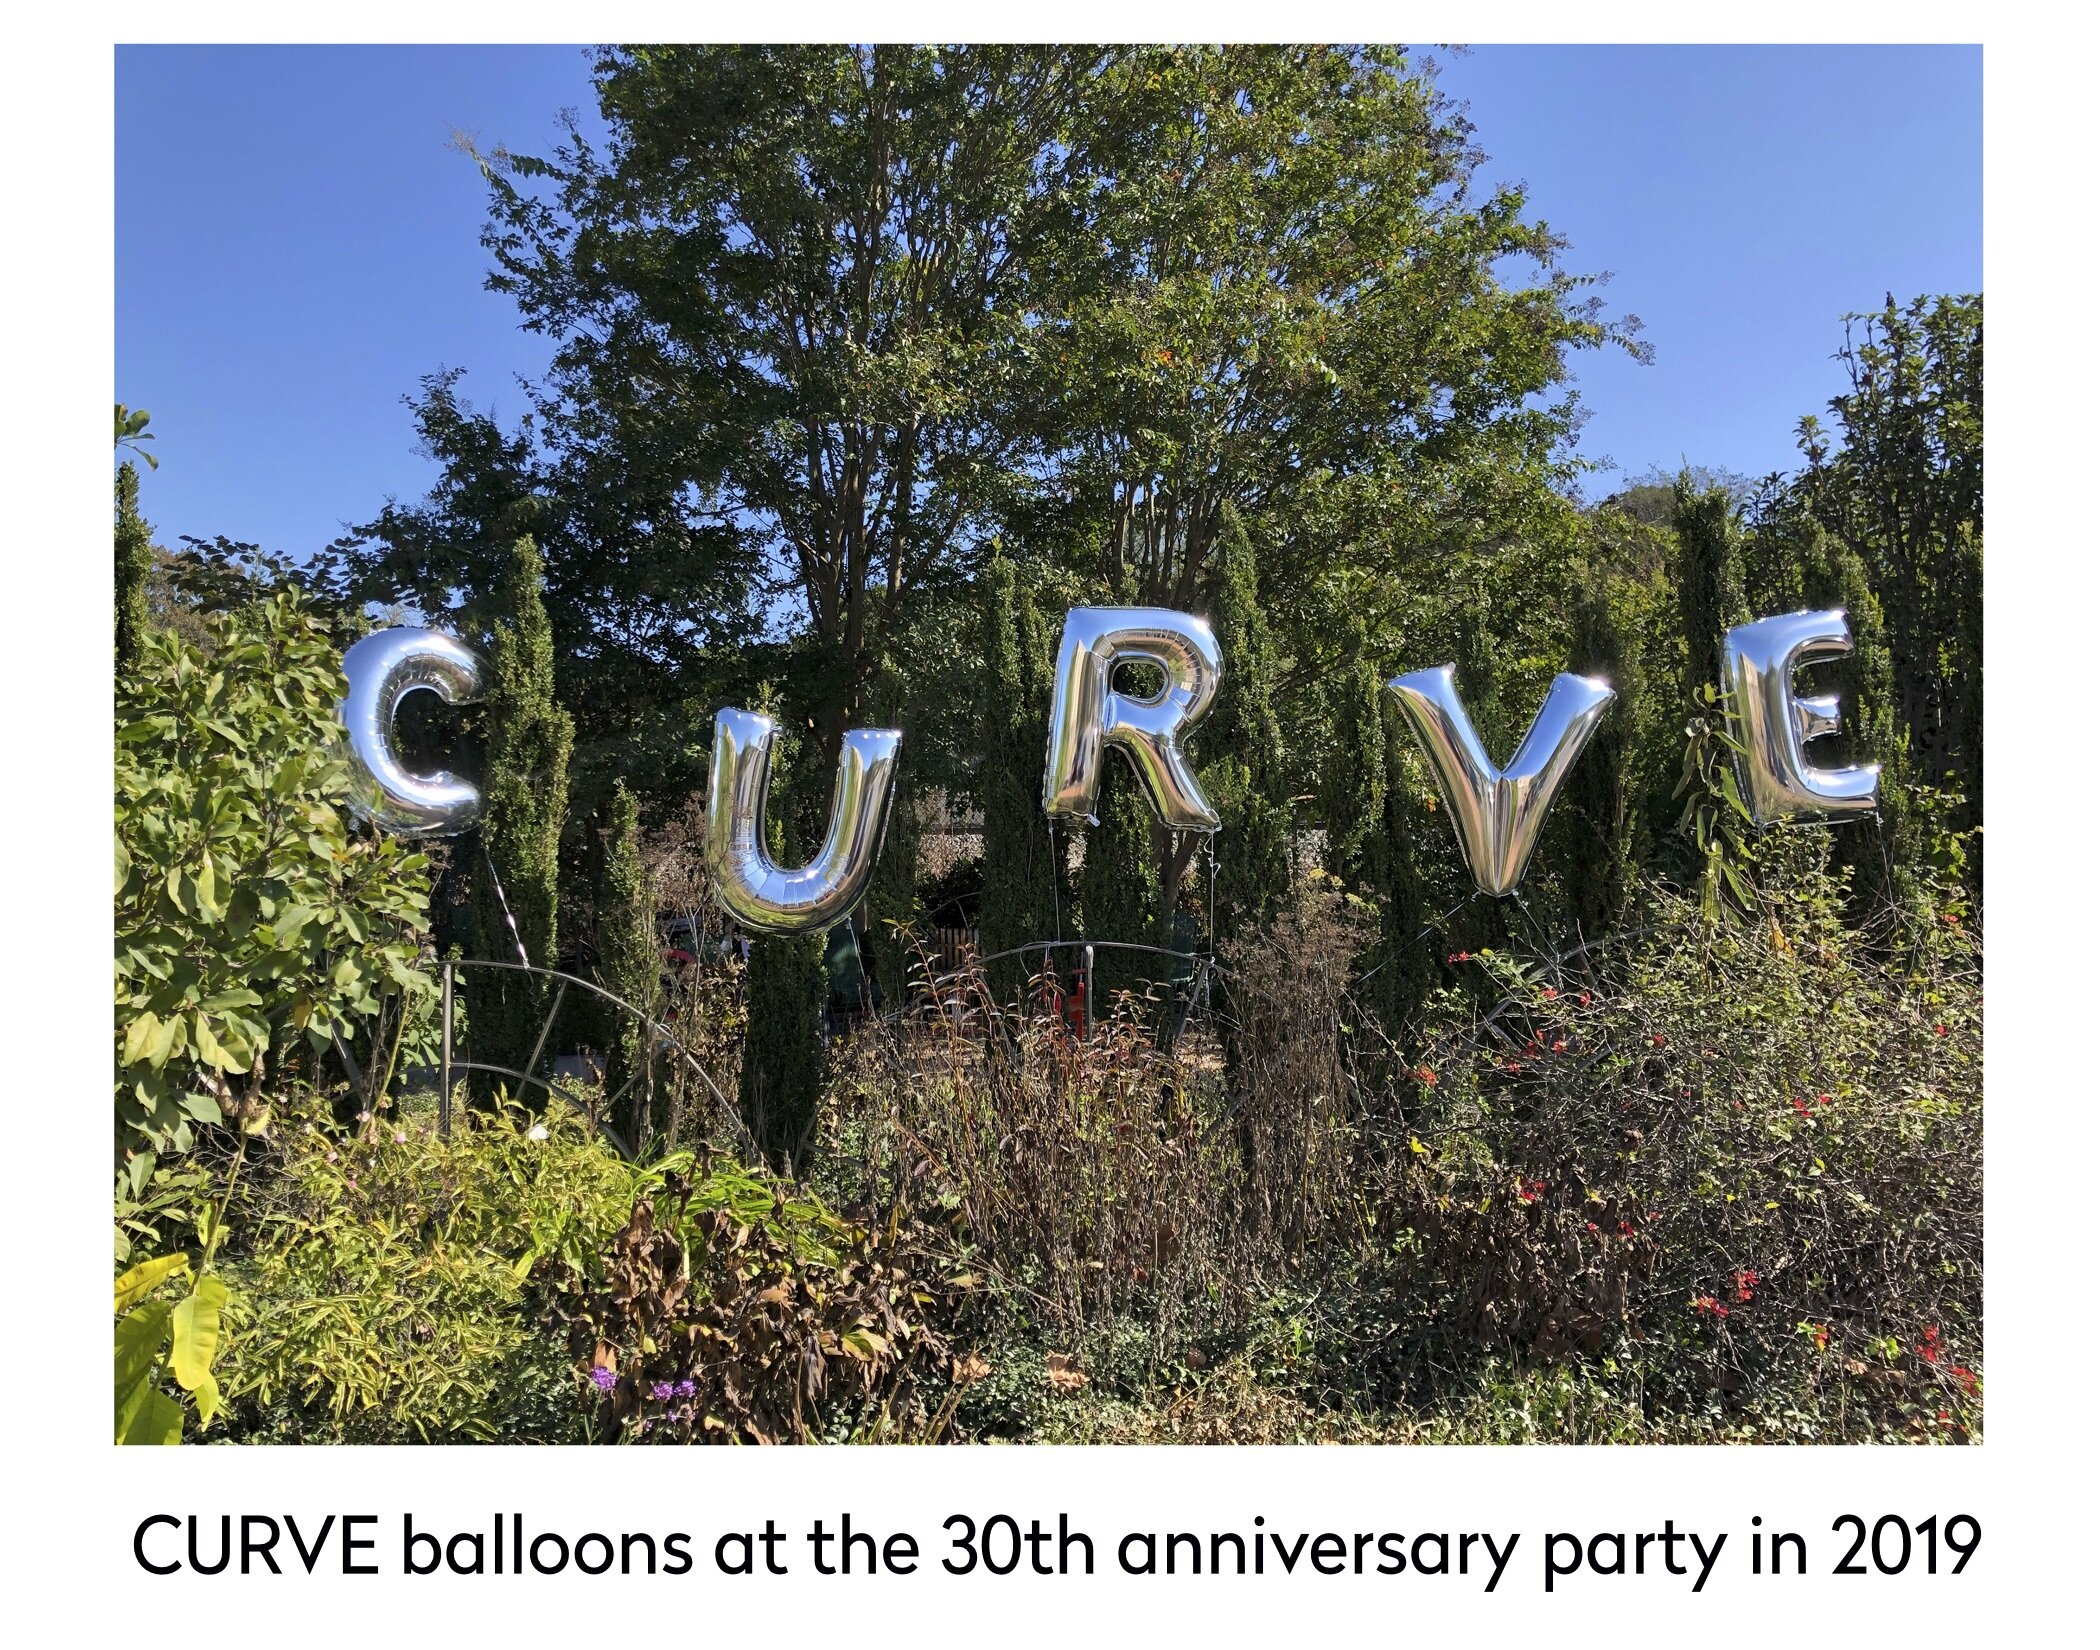 curve balloons 30 party 2019.jpg